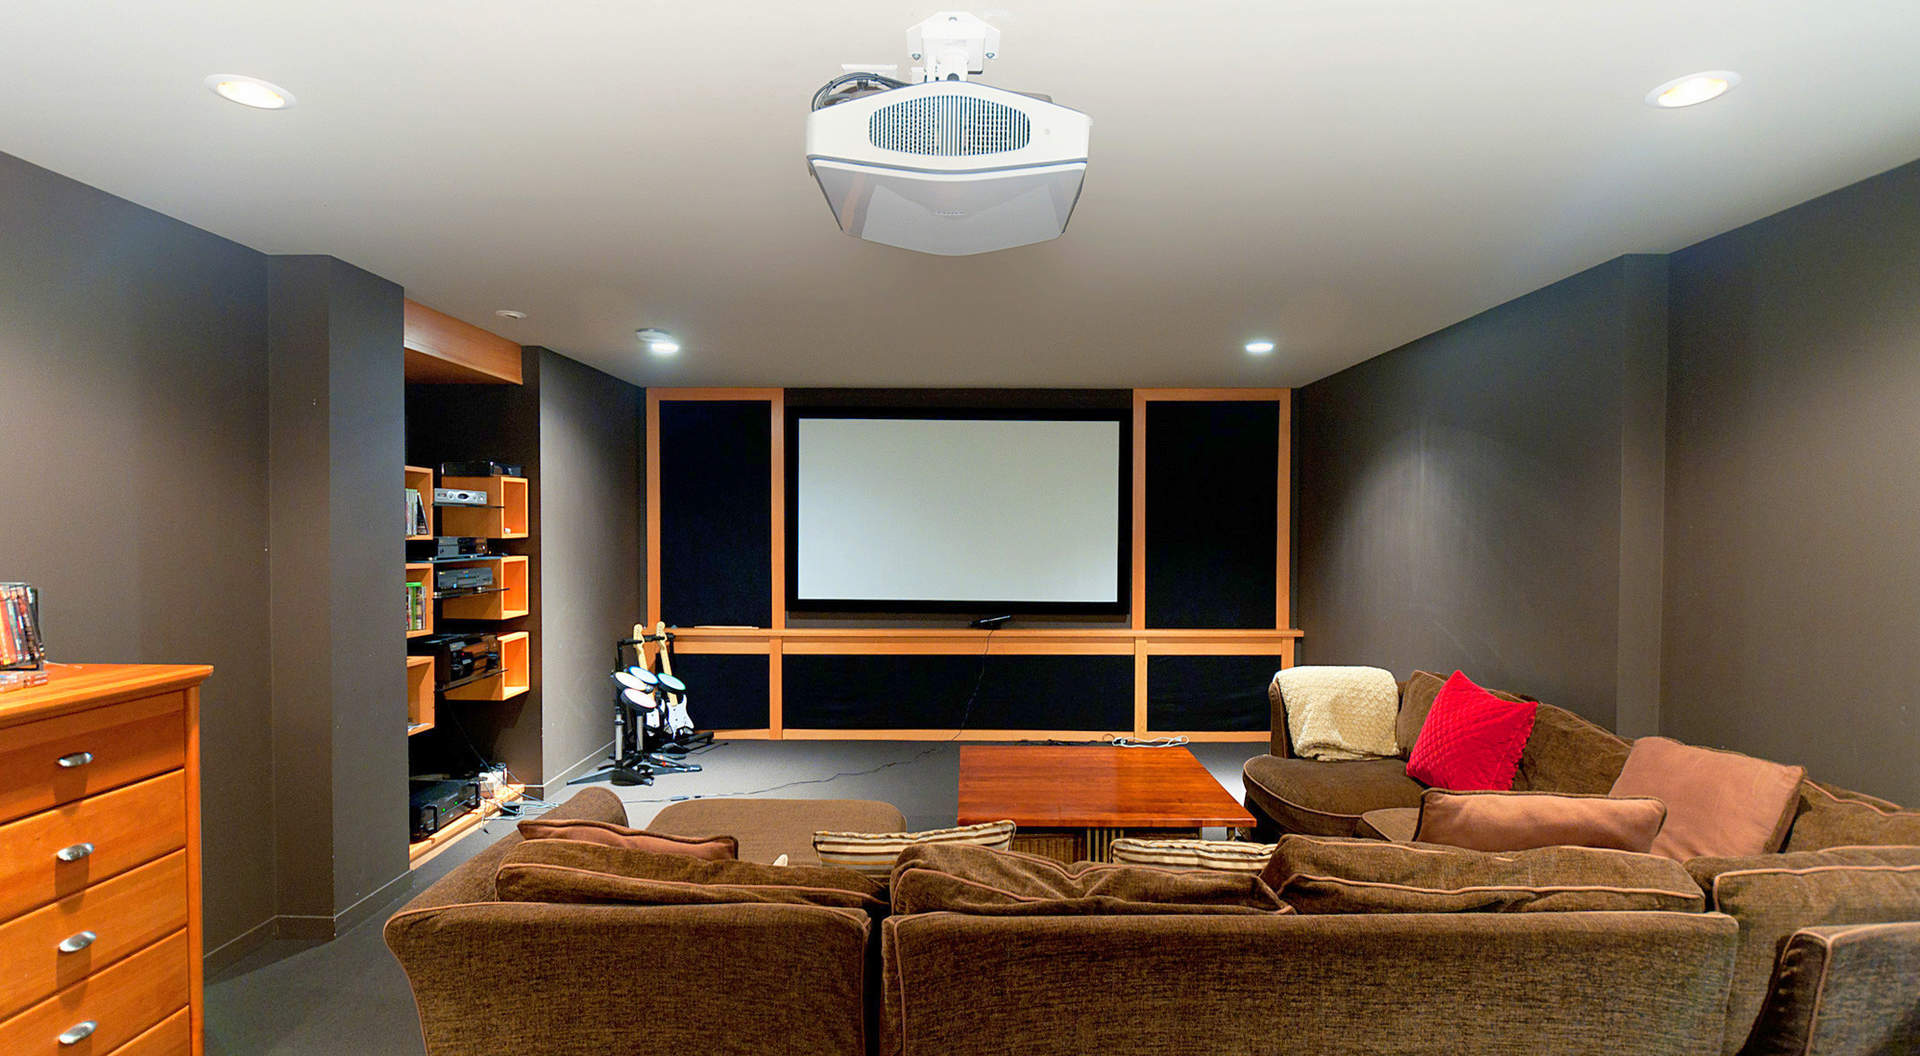 Medios / Room Theater